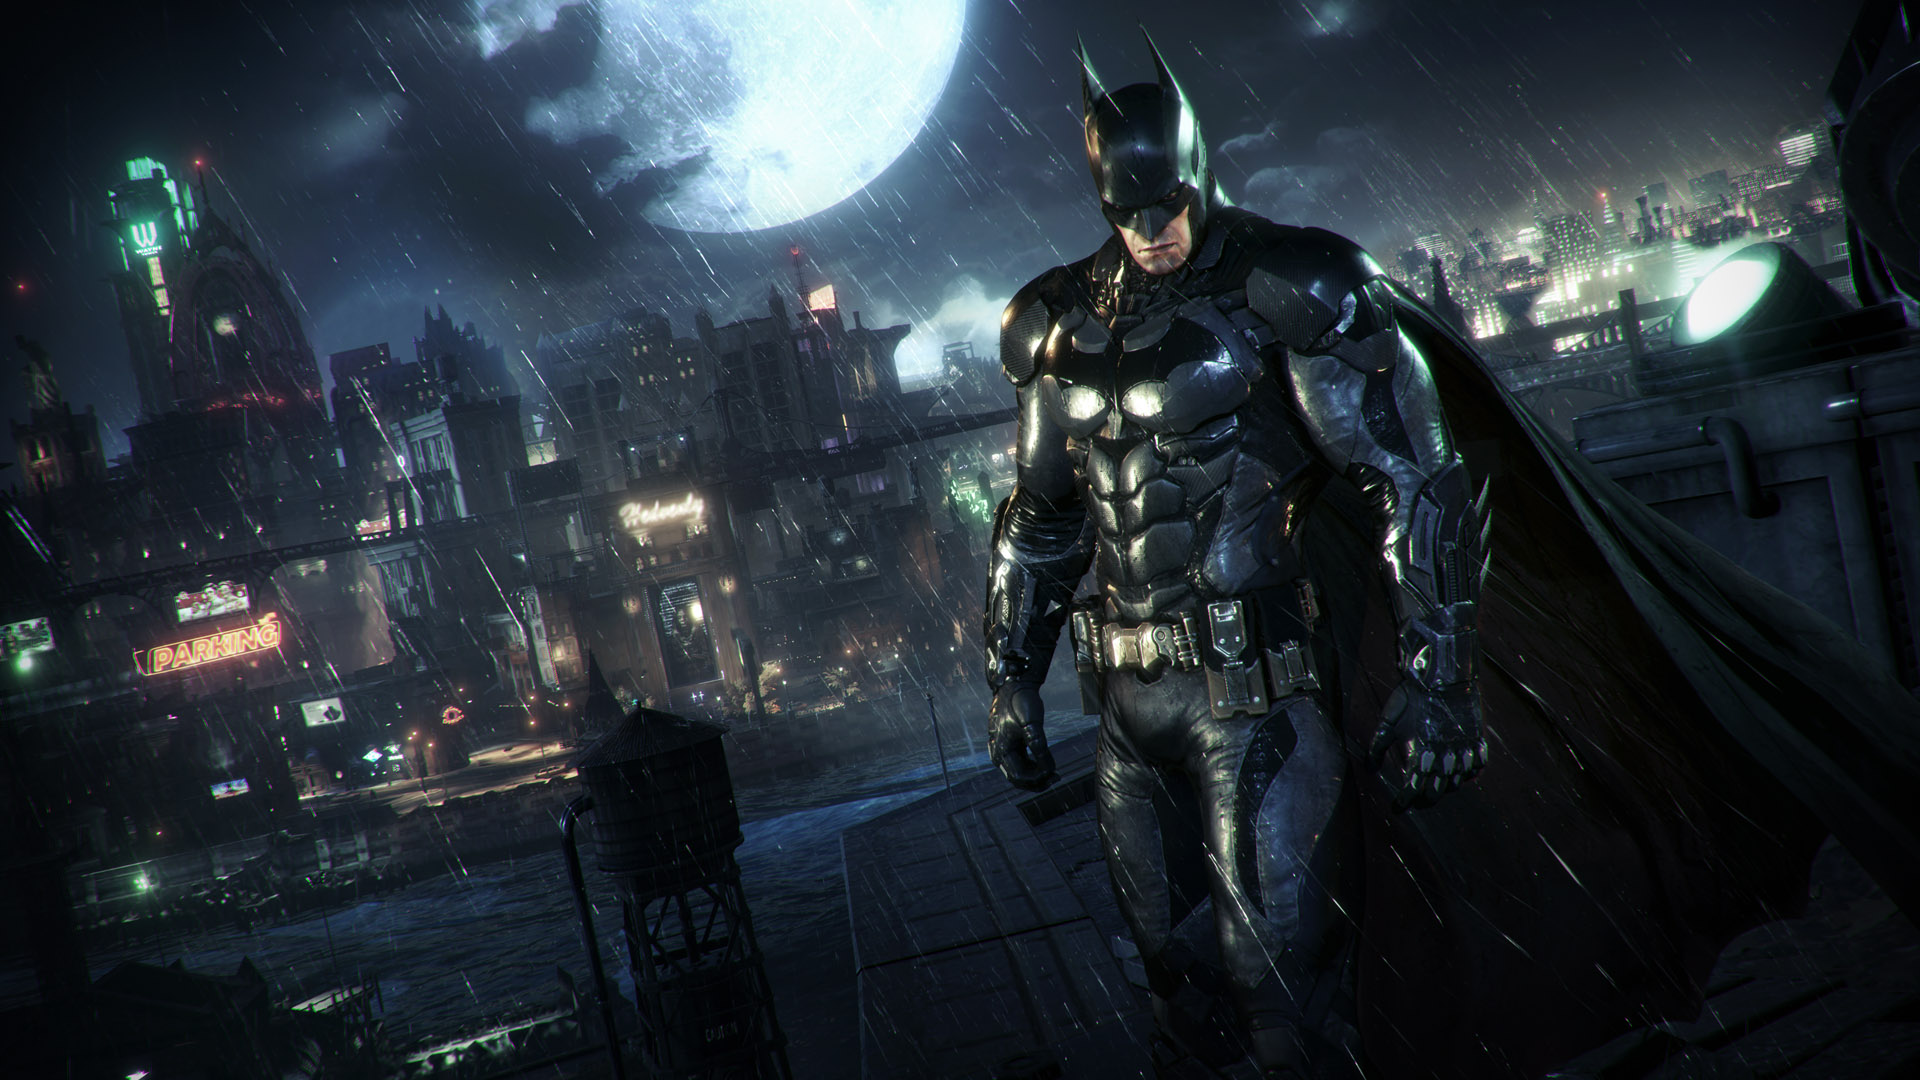 See the Batmobile in action in this new Batman: Arkham Knight gameplay video